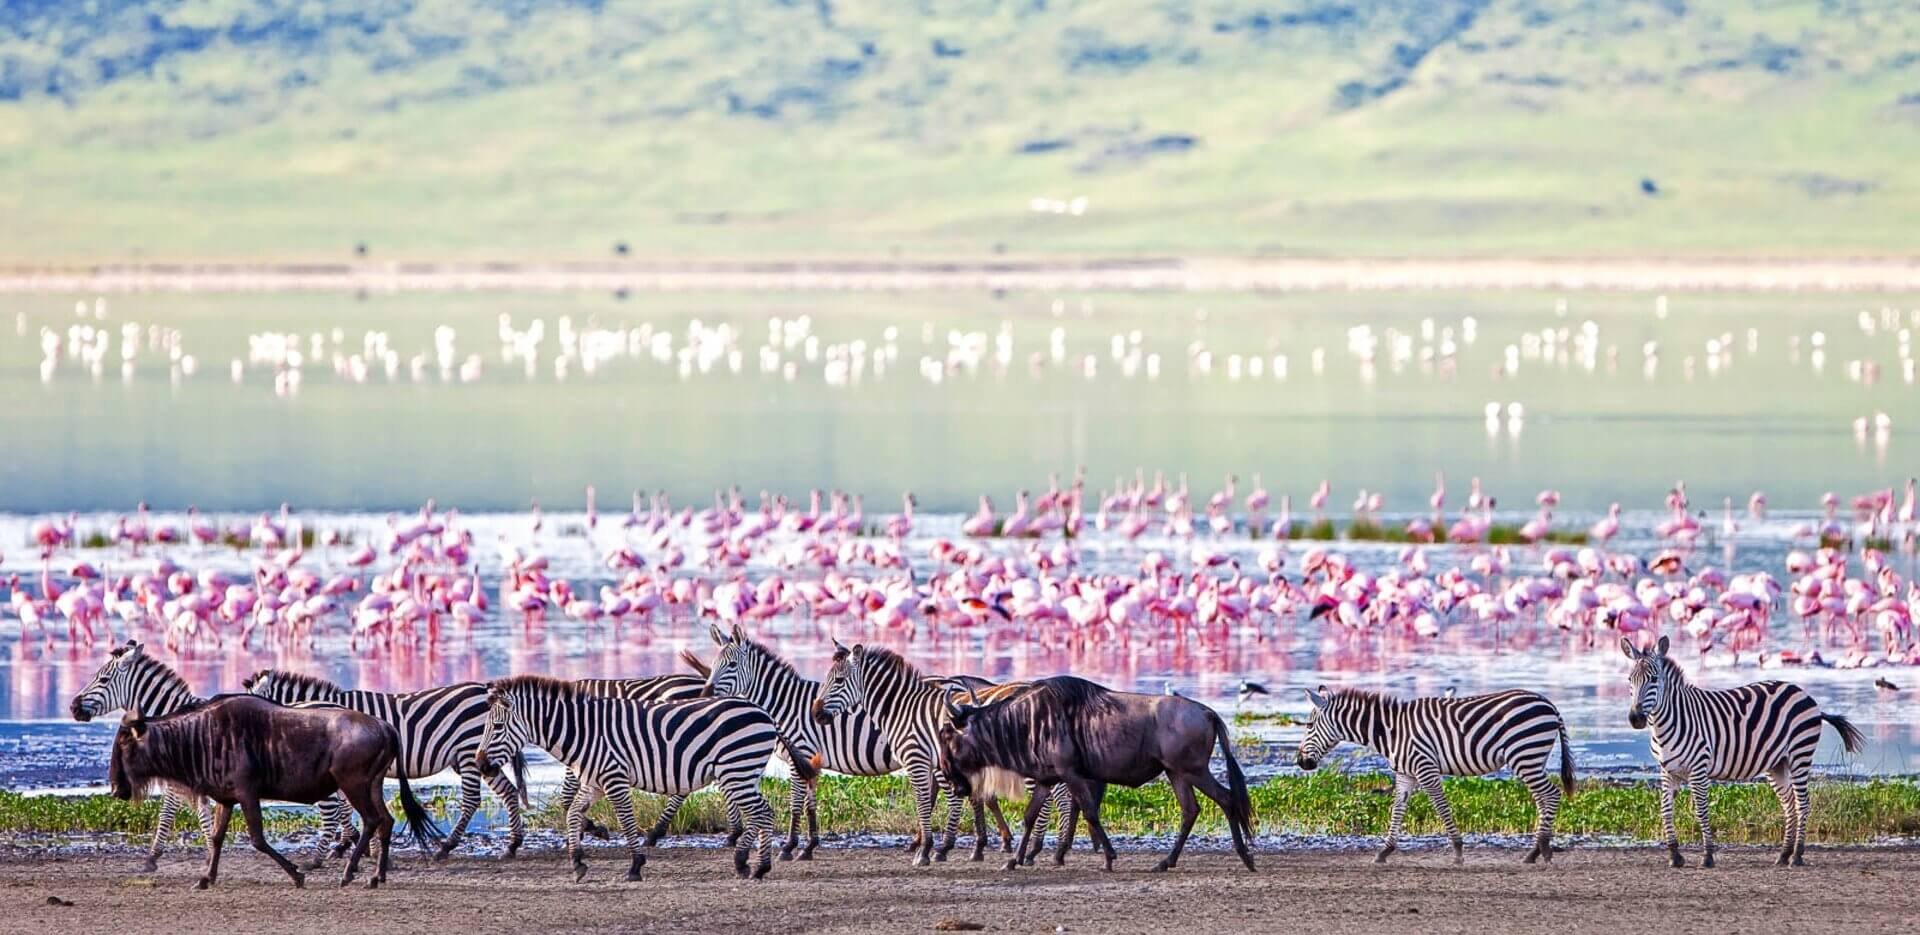 Ngorongoro Crater is one of the best places to view wildlife during April and May